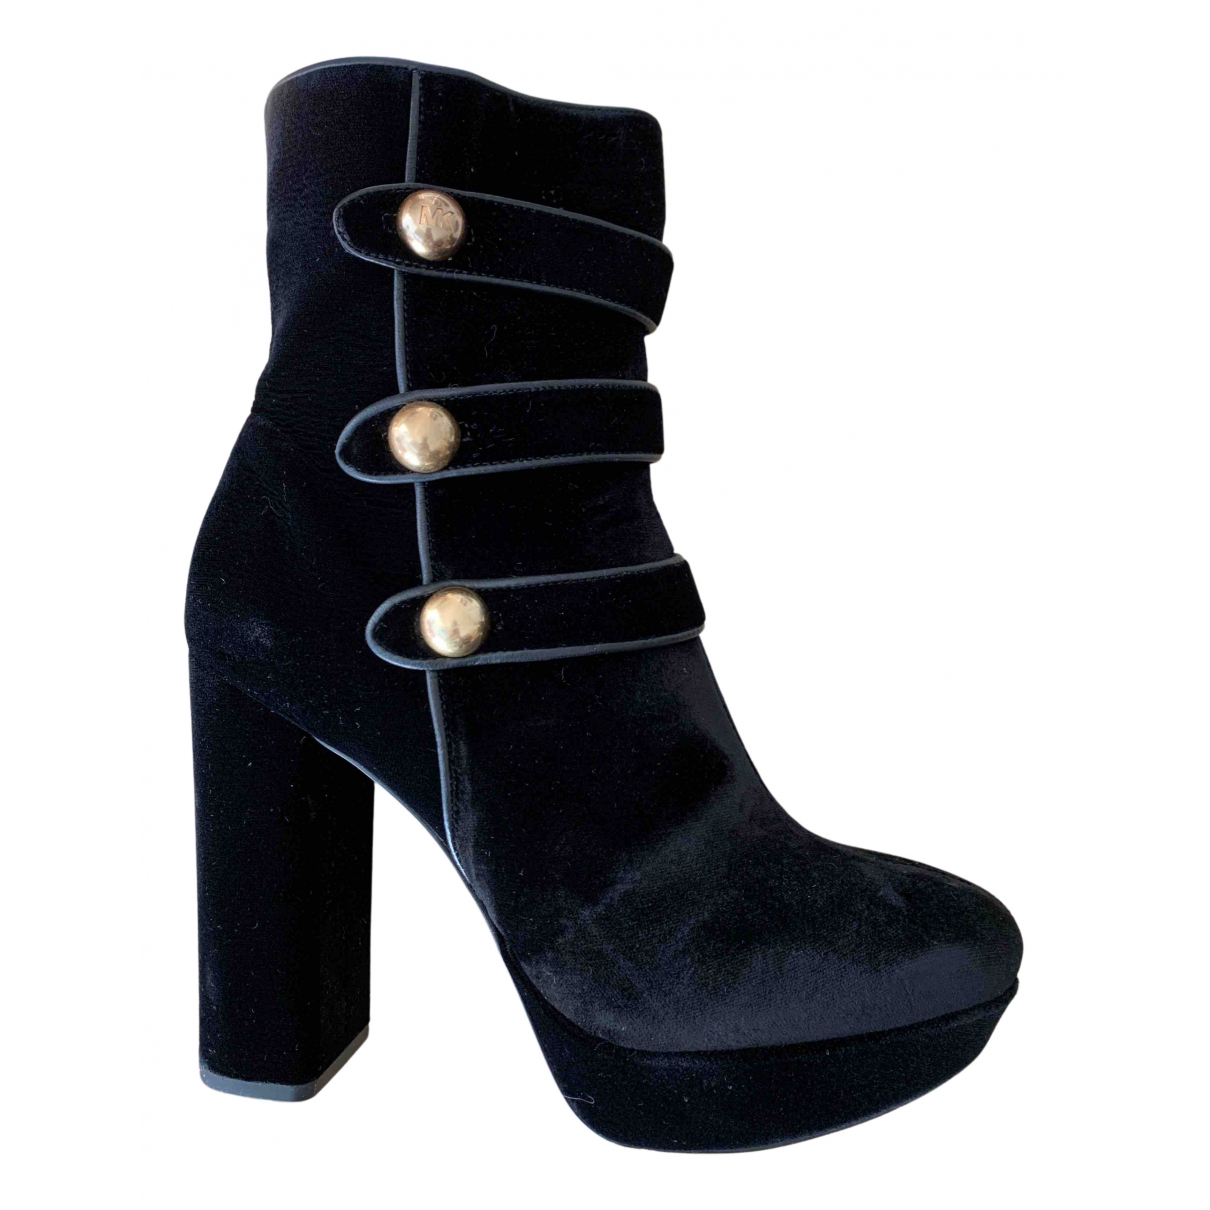 Michael Kors \N Black Suede Ankle boots for Women 37 EU